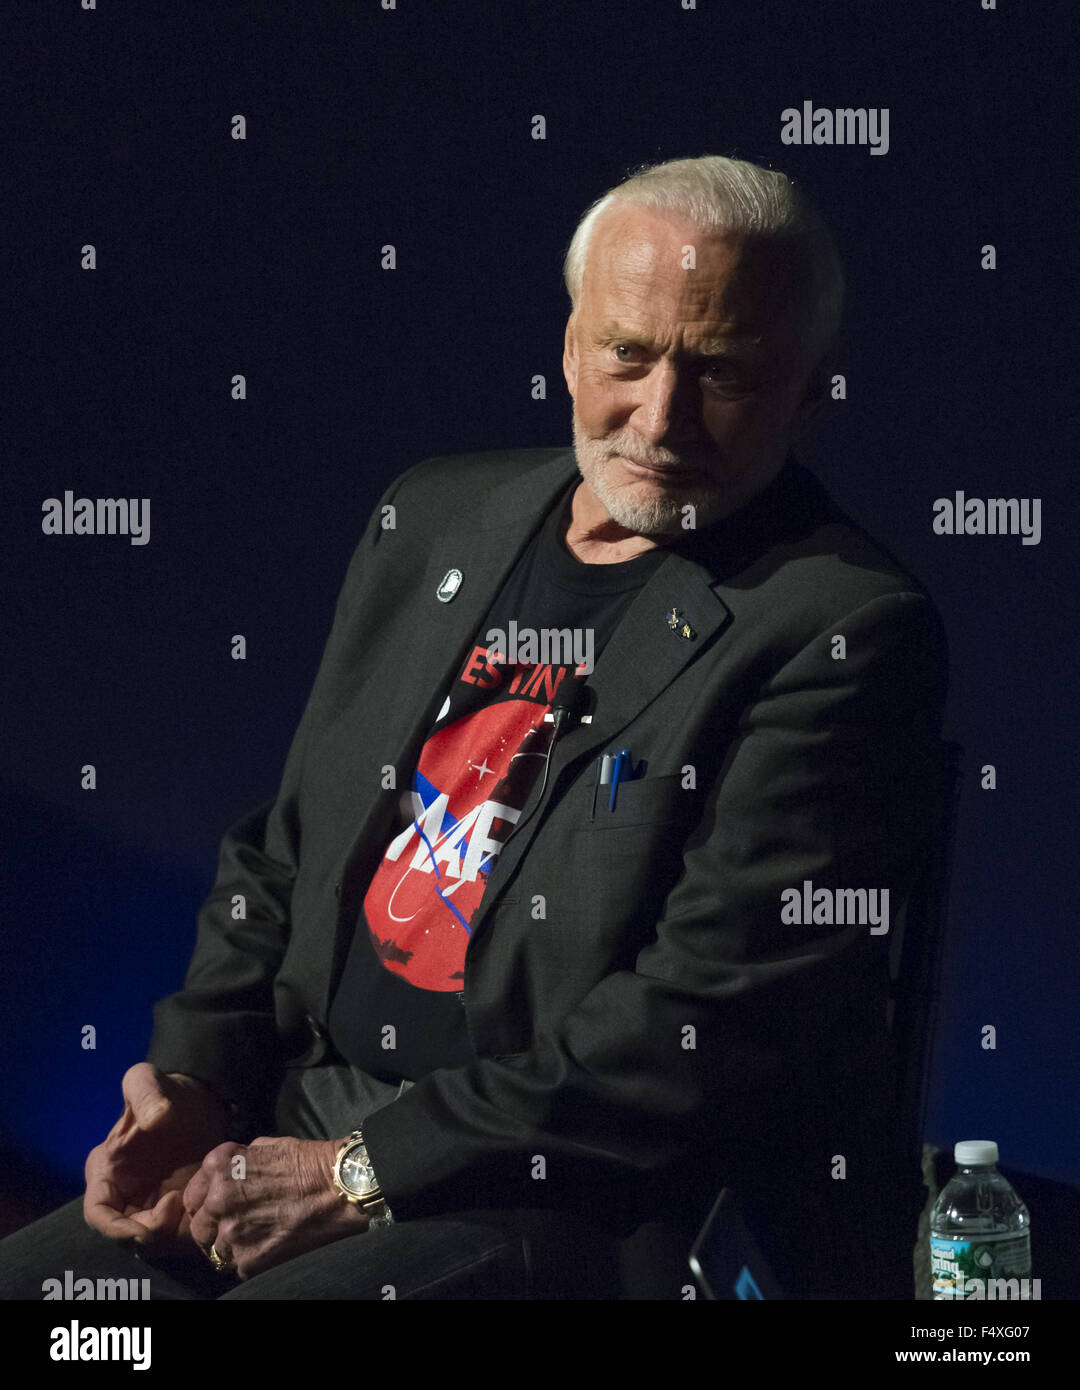 Garden City, New York, USA. 23rd Oct, 2015. Former NASA astronaut Edwin BUZZ ALDRIN is in conversation about his - Stock Image